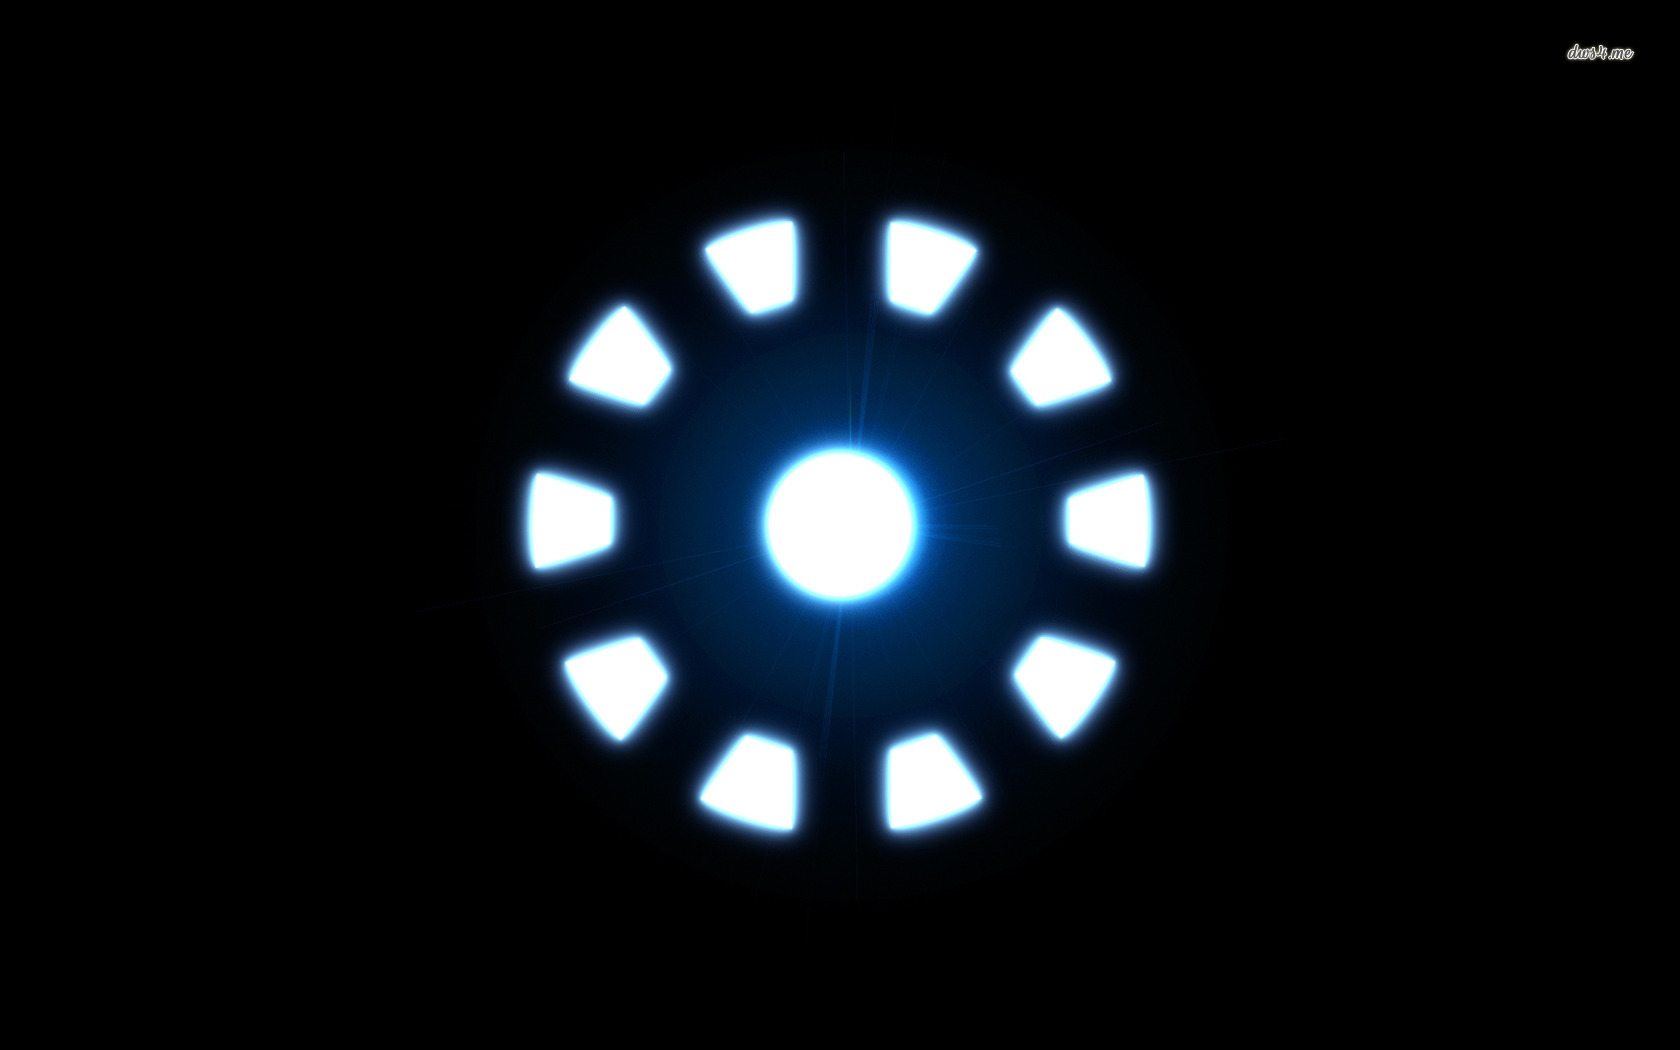 Iron Mans arc reactor wallpaper   Minimalistic wallpapers   22299 1680x1050